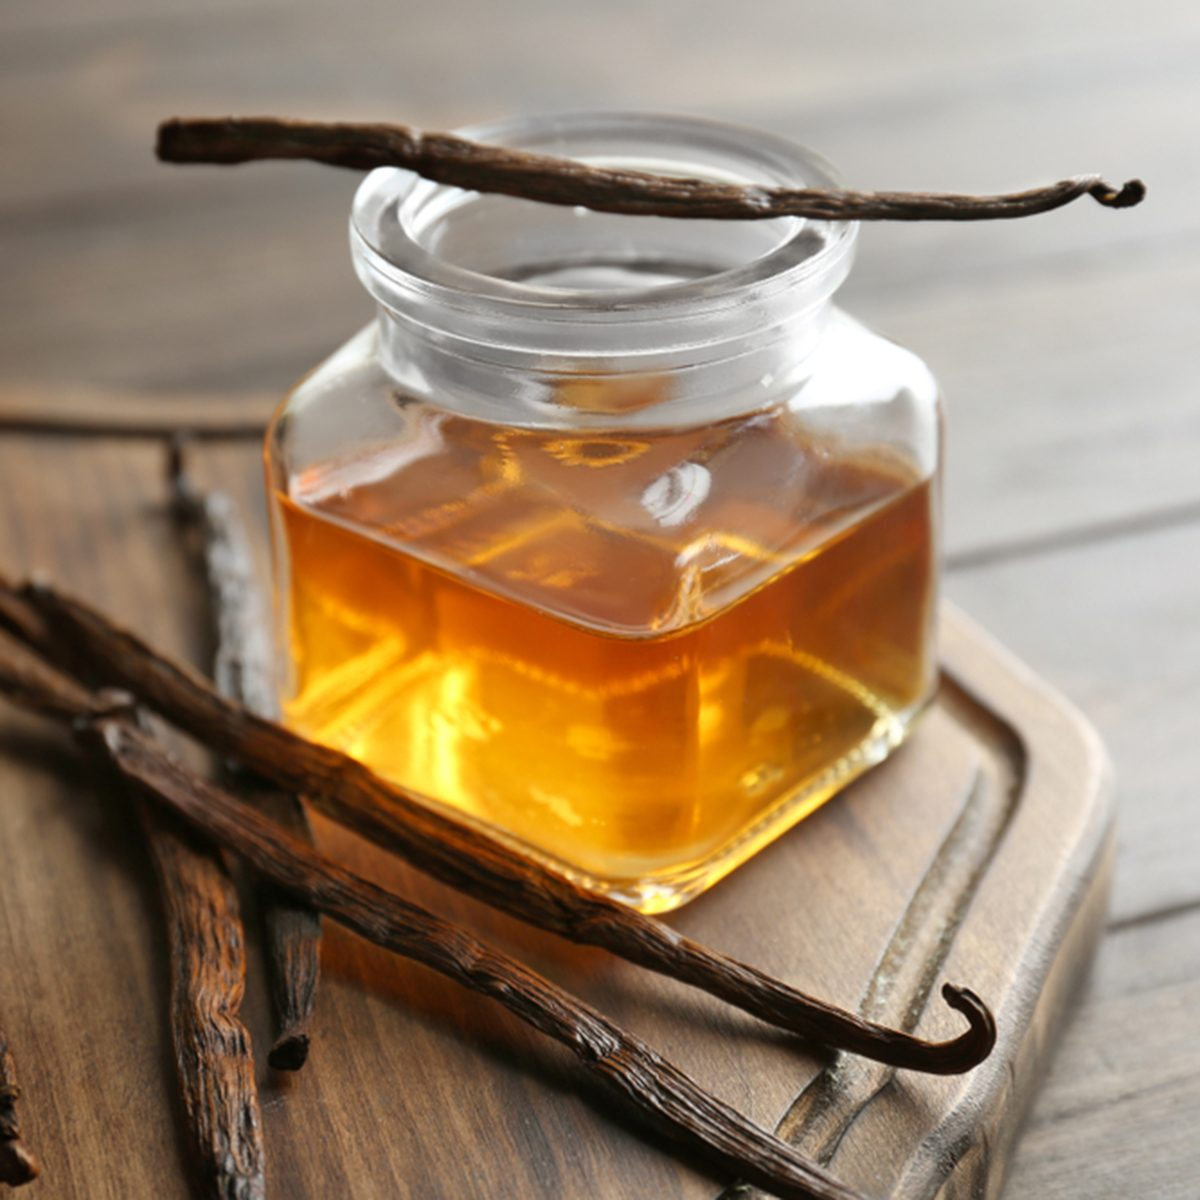 Jar with vanilla extract and sticks on wooden board